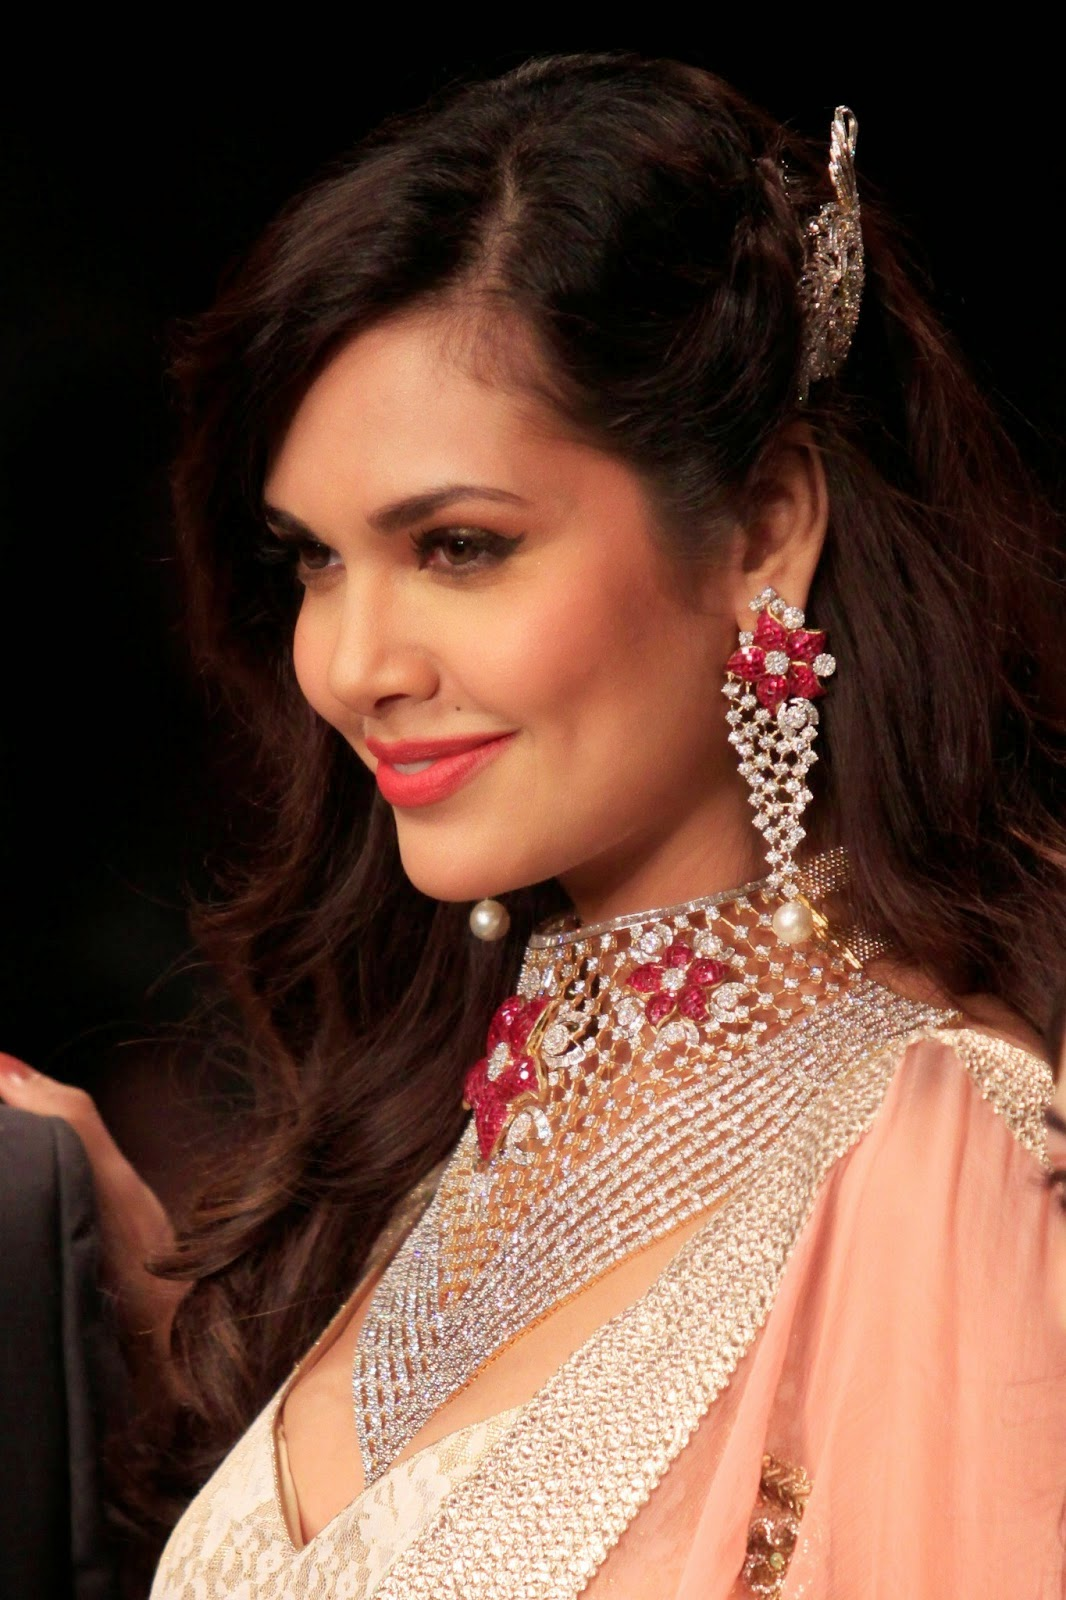 STAR CELEBRITY WALLPAPERS: Esha Gupta HD Wallpapers